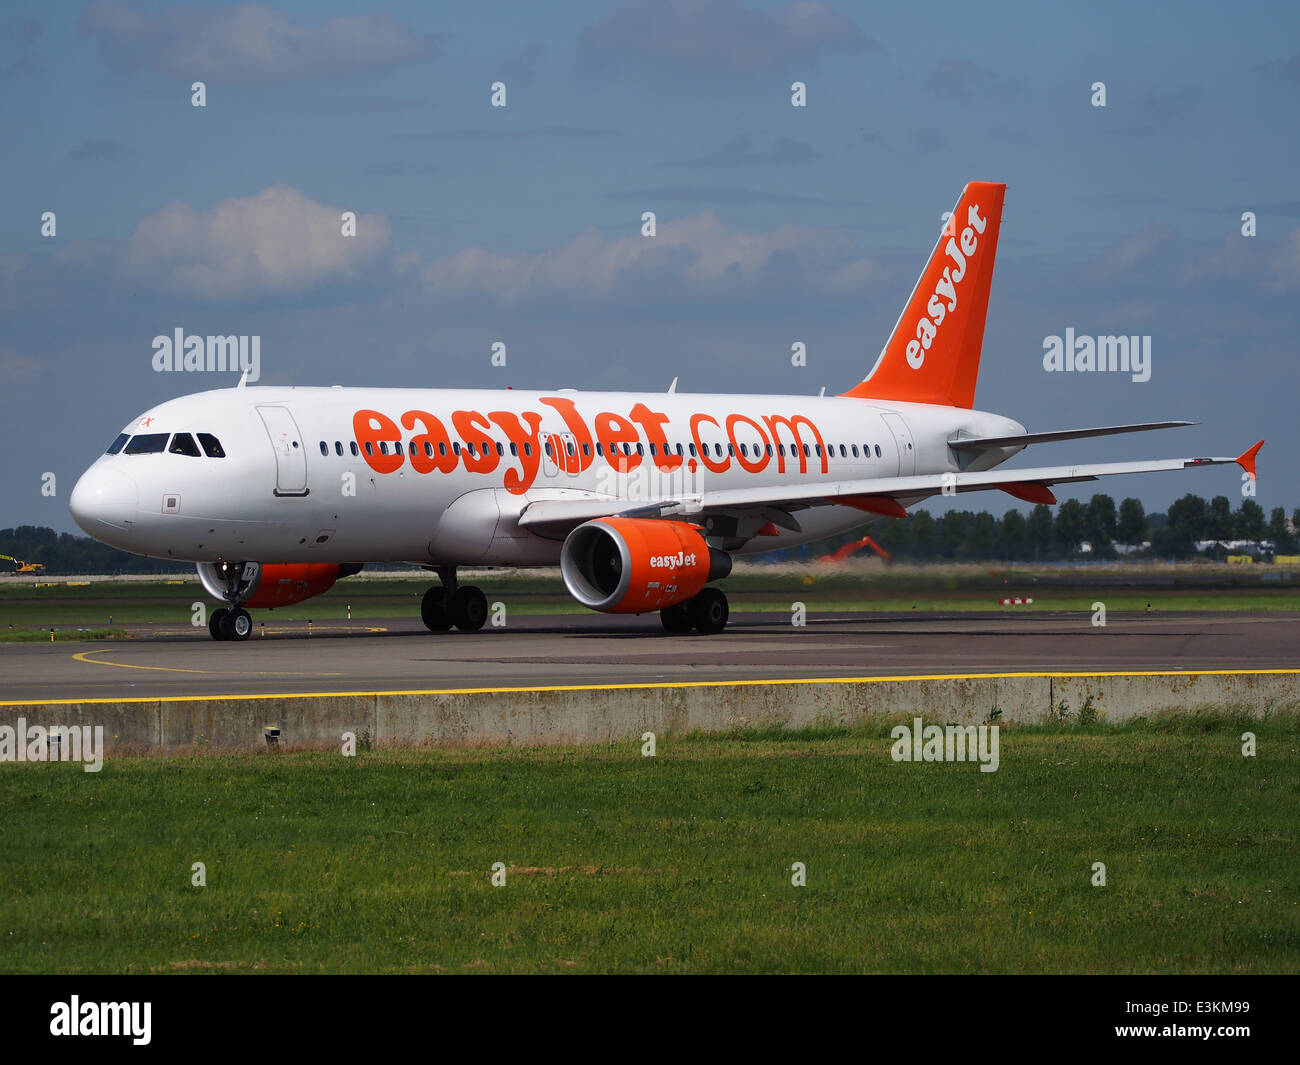 G-EZTX easyJet Airbus A320-214 taxiing at Schiphol (AMS - EHAM), The Netherlands, 18may2014, pic-6 Stock Photo